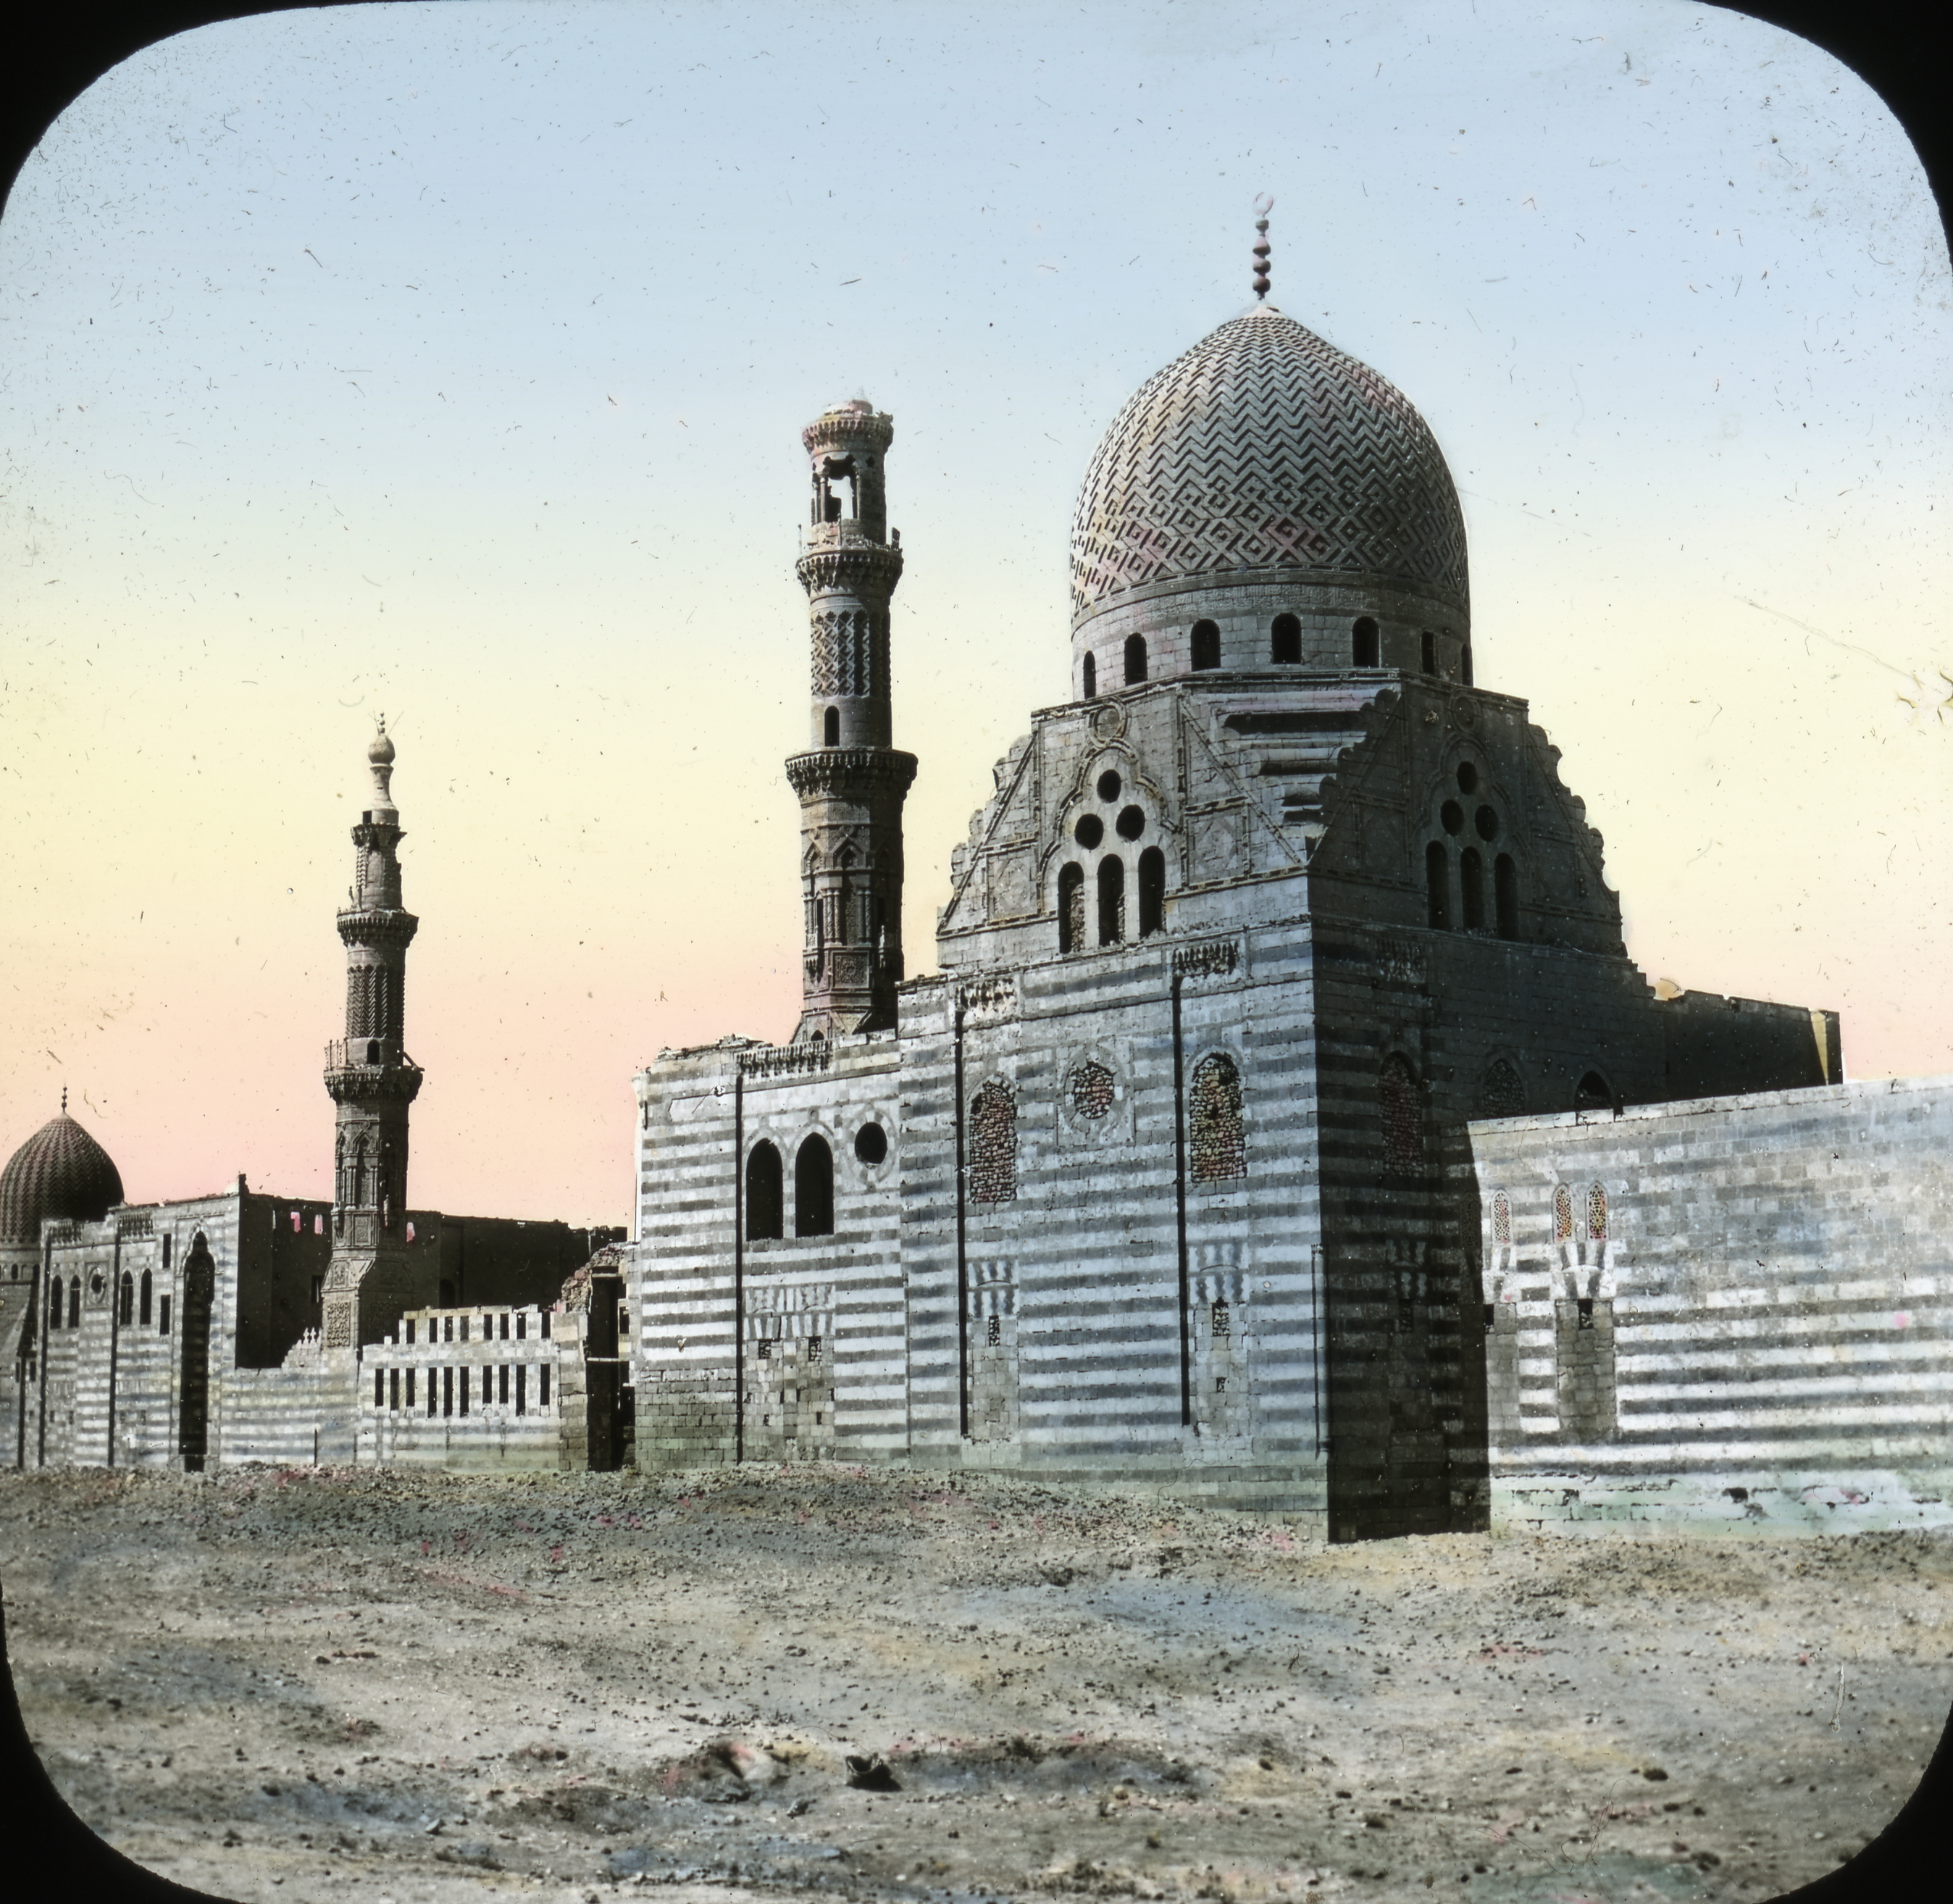 Egypt: Tomb of Caliphs, Old Cairo. Brooklyn Museum Archives. Lantern Slide Collection.